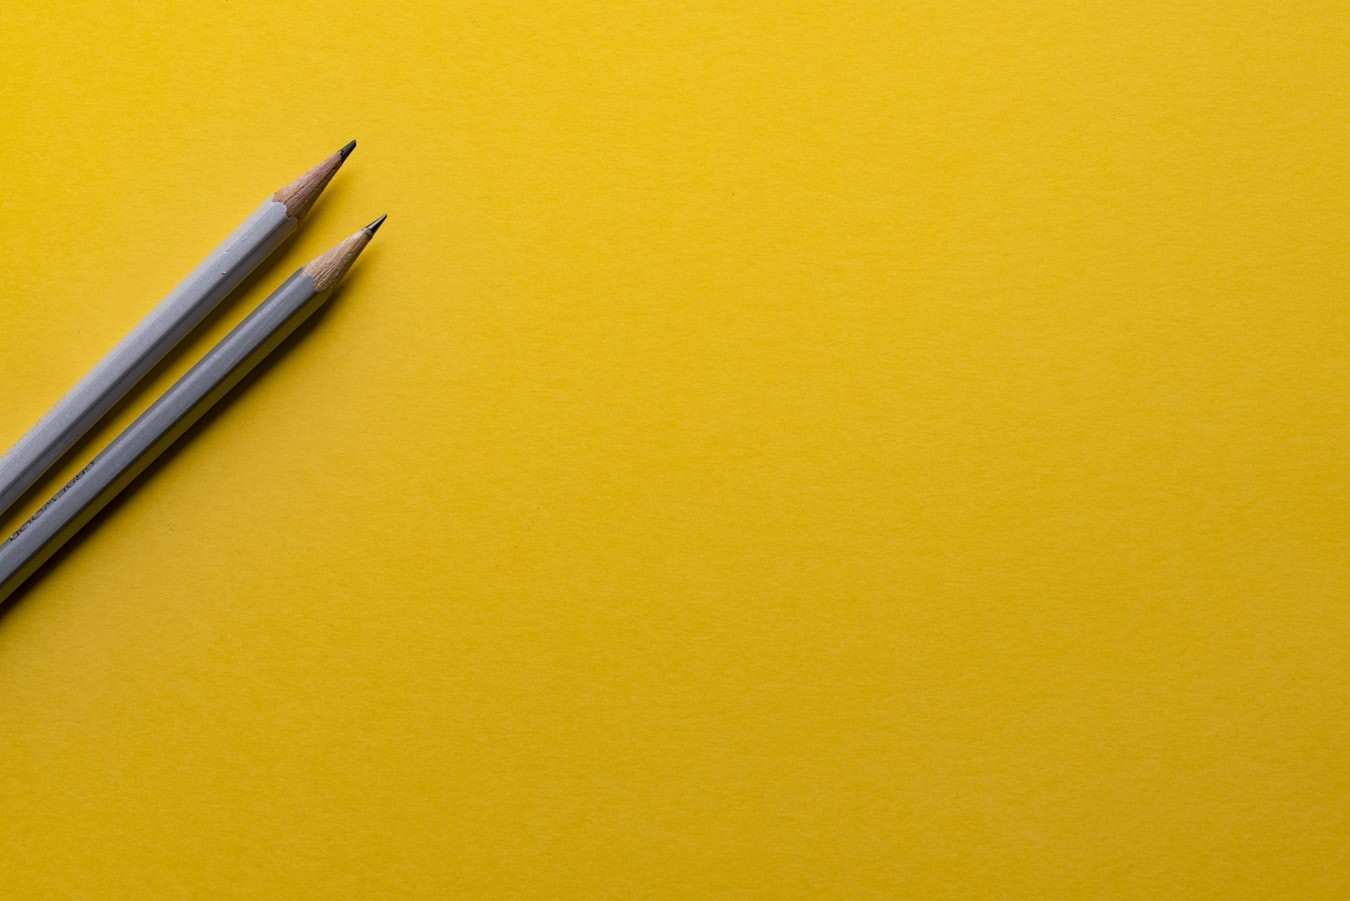 Two gray pencils on a bright yellow background